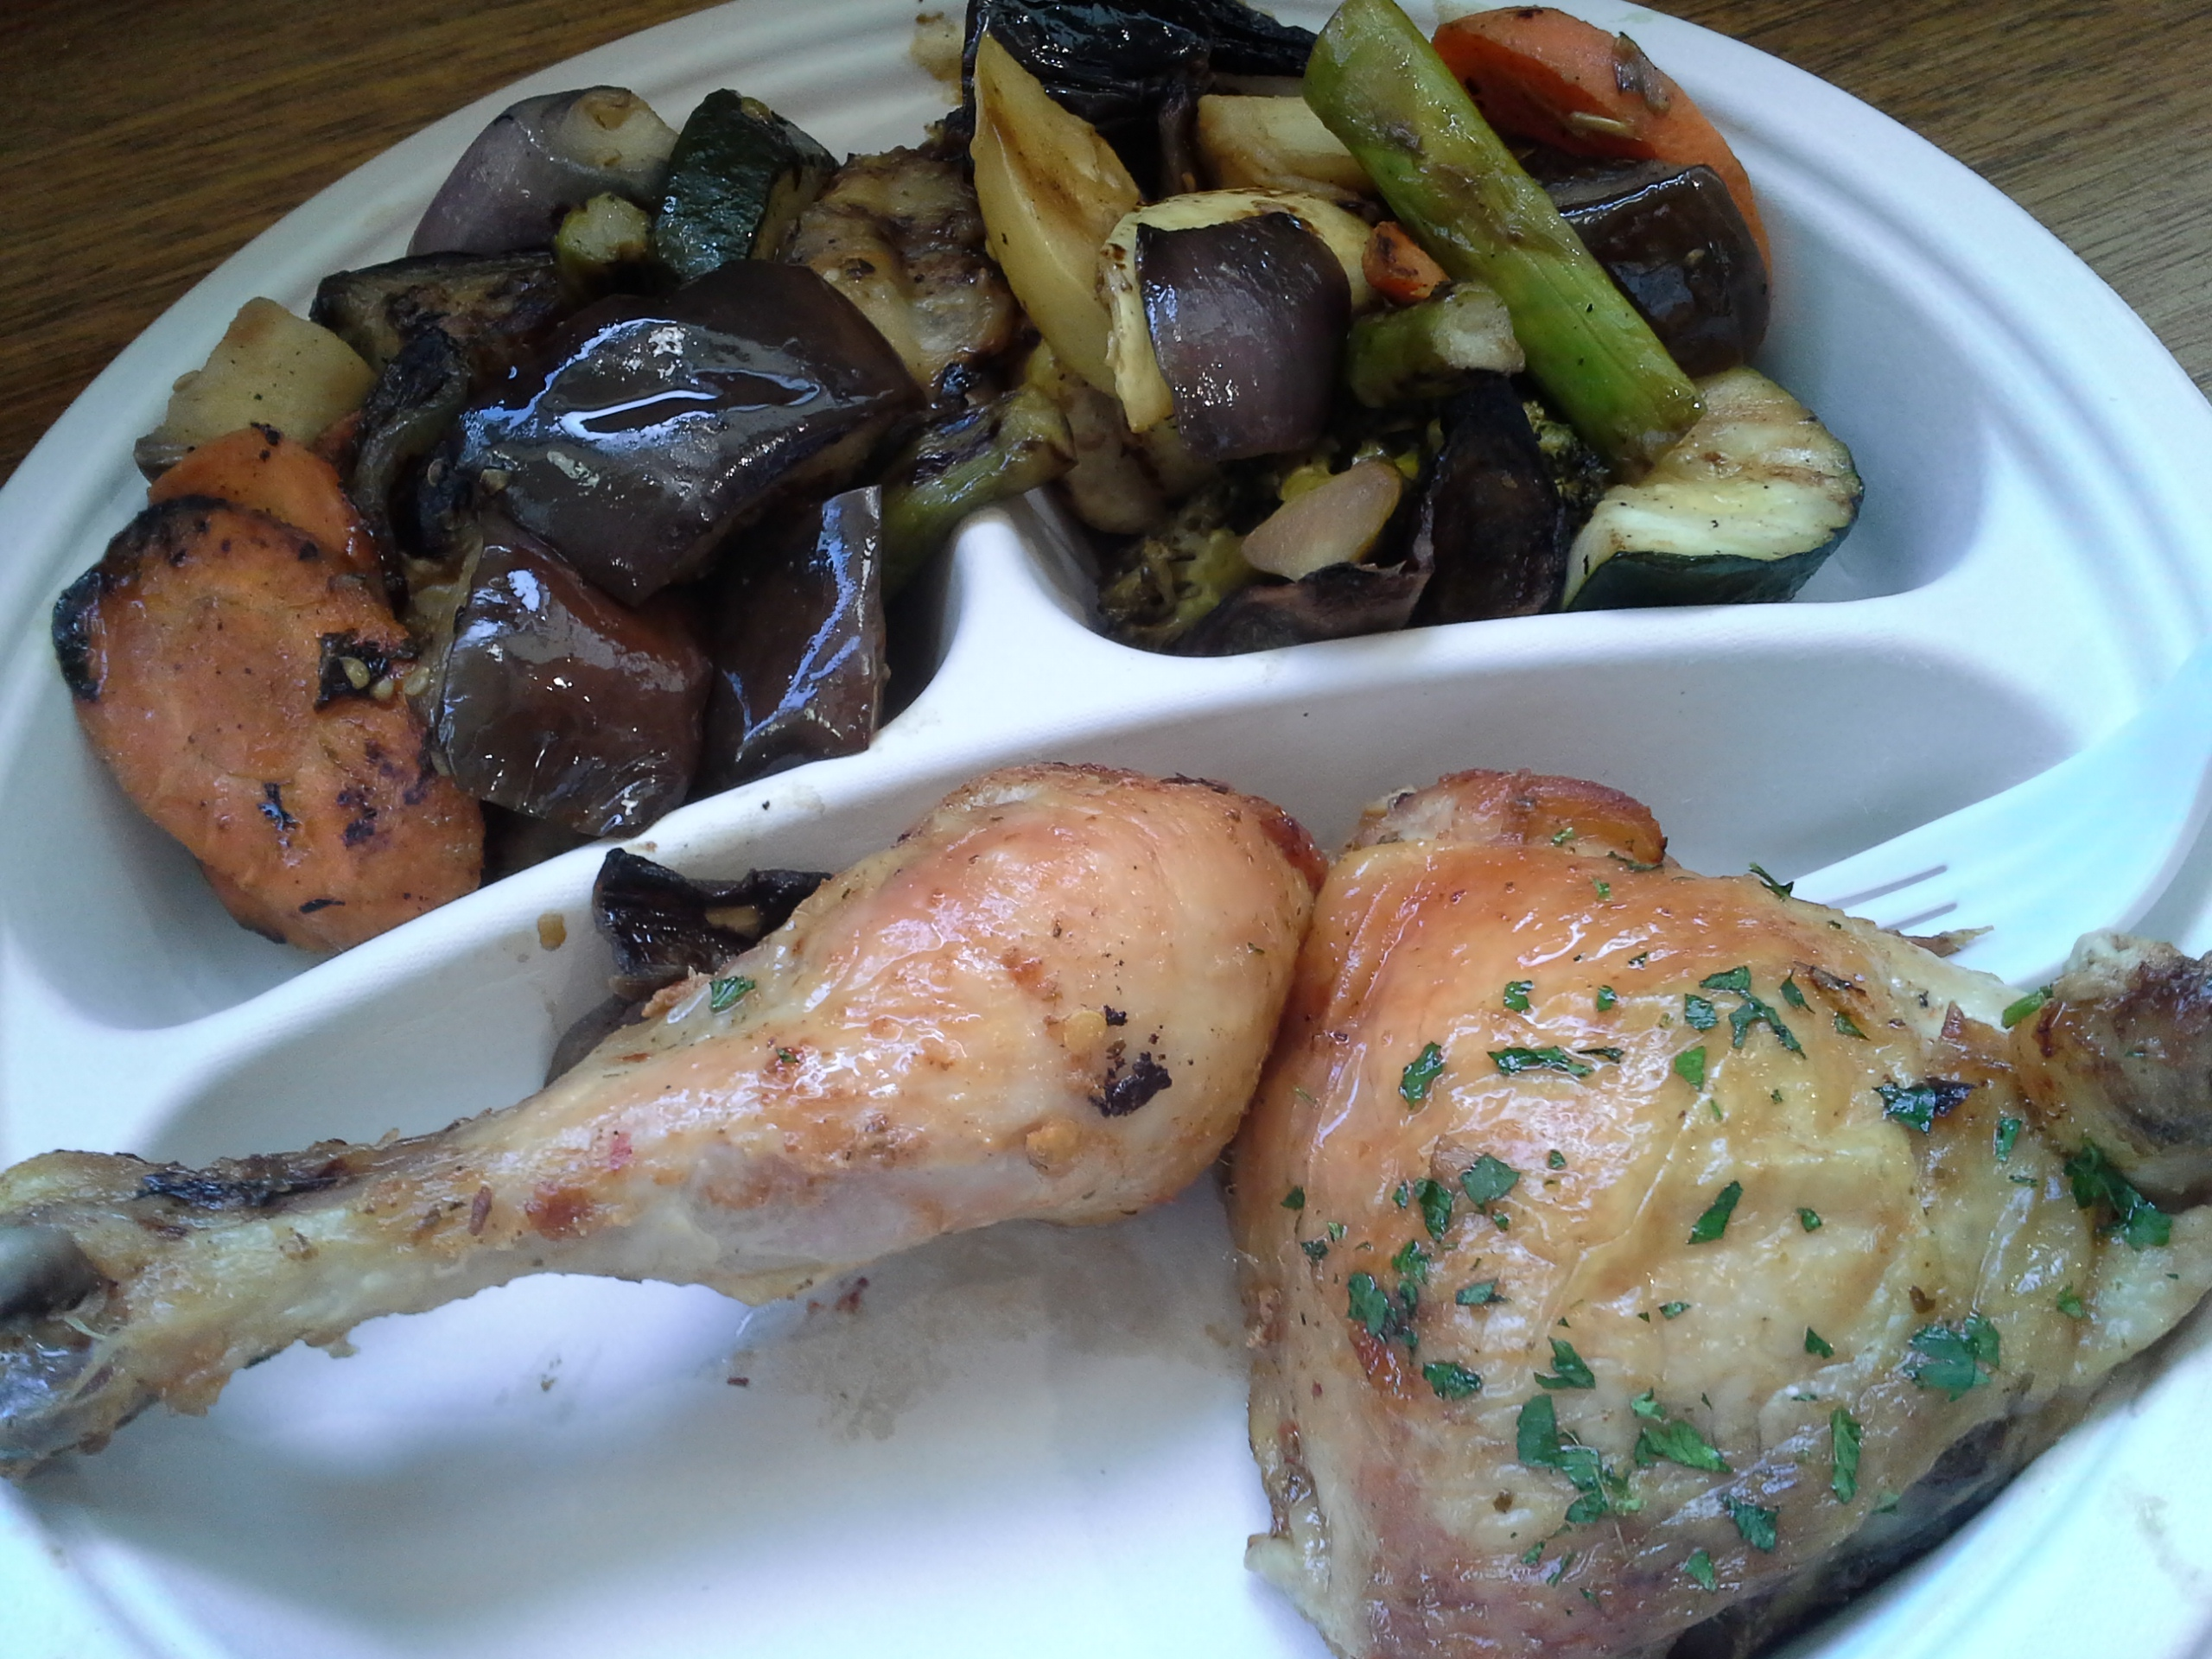 Lunch: 1:10 p.m. | Rotisserie chicken, carrots, eggplant, zucchini, yellow squash, onions